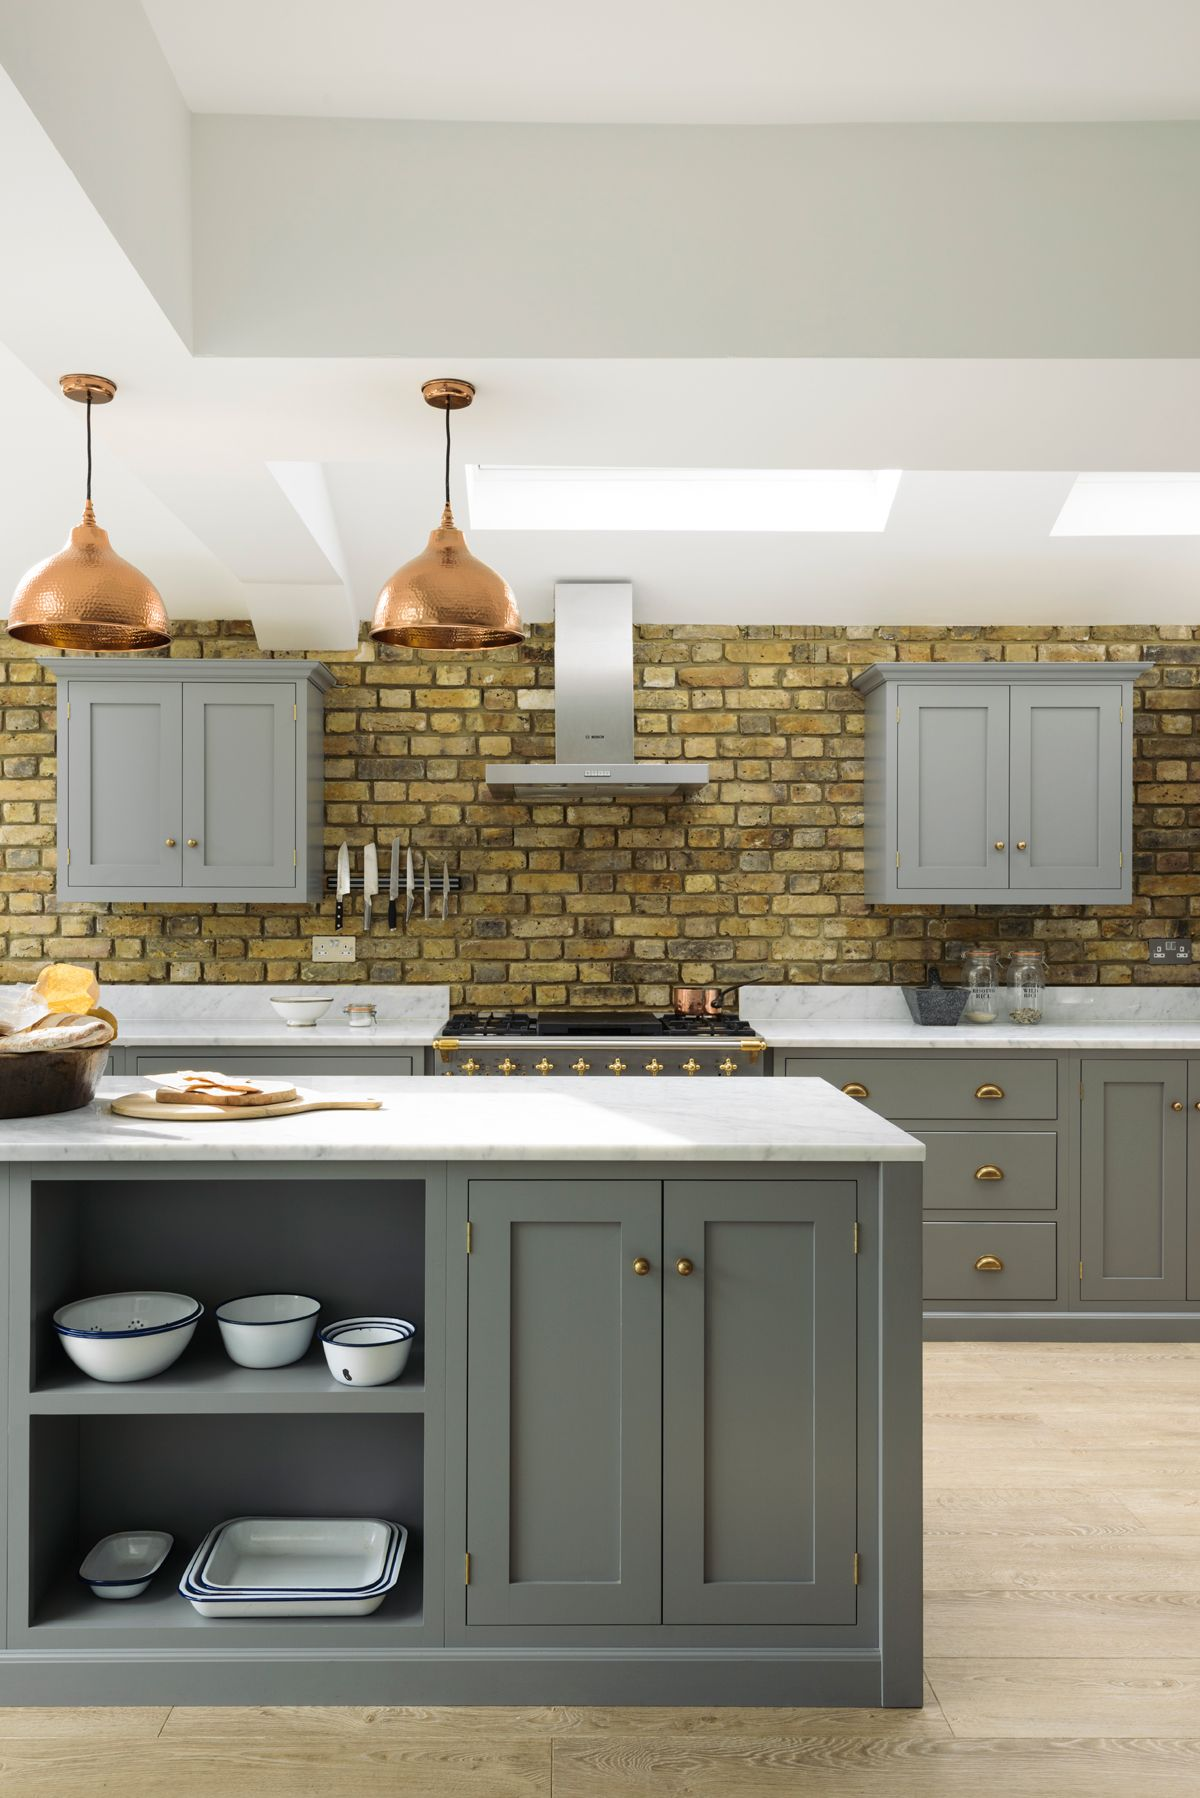 This 'Lead' grey kitchen used a clever mix of open and